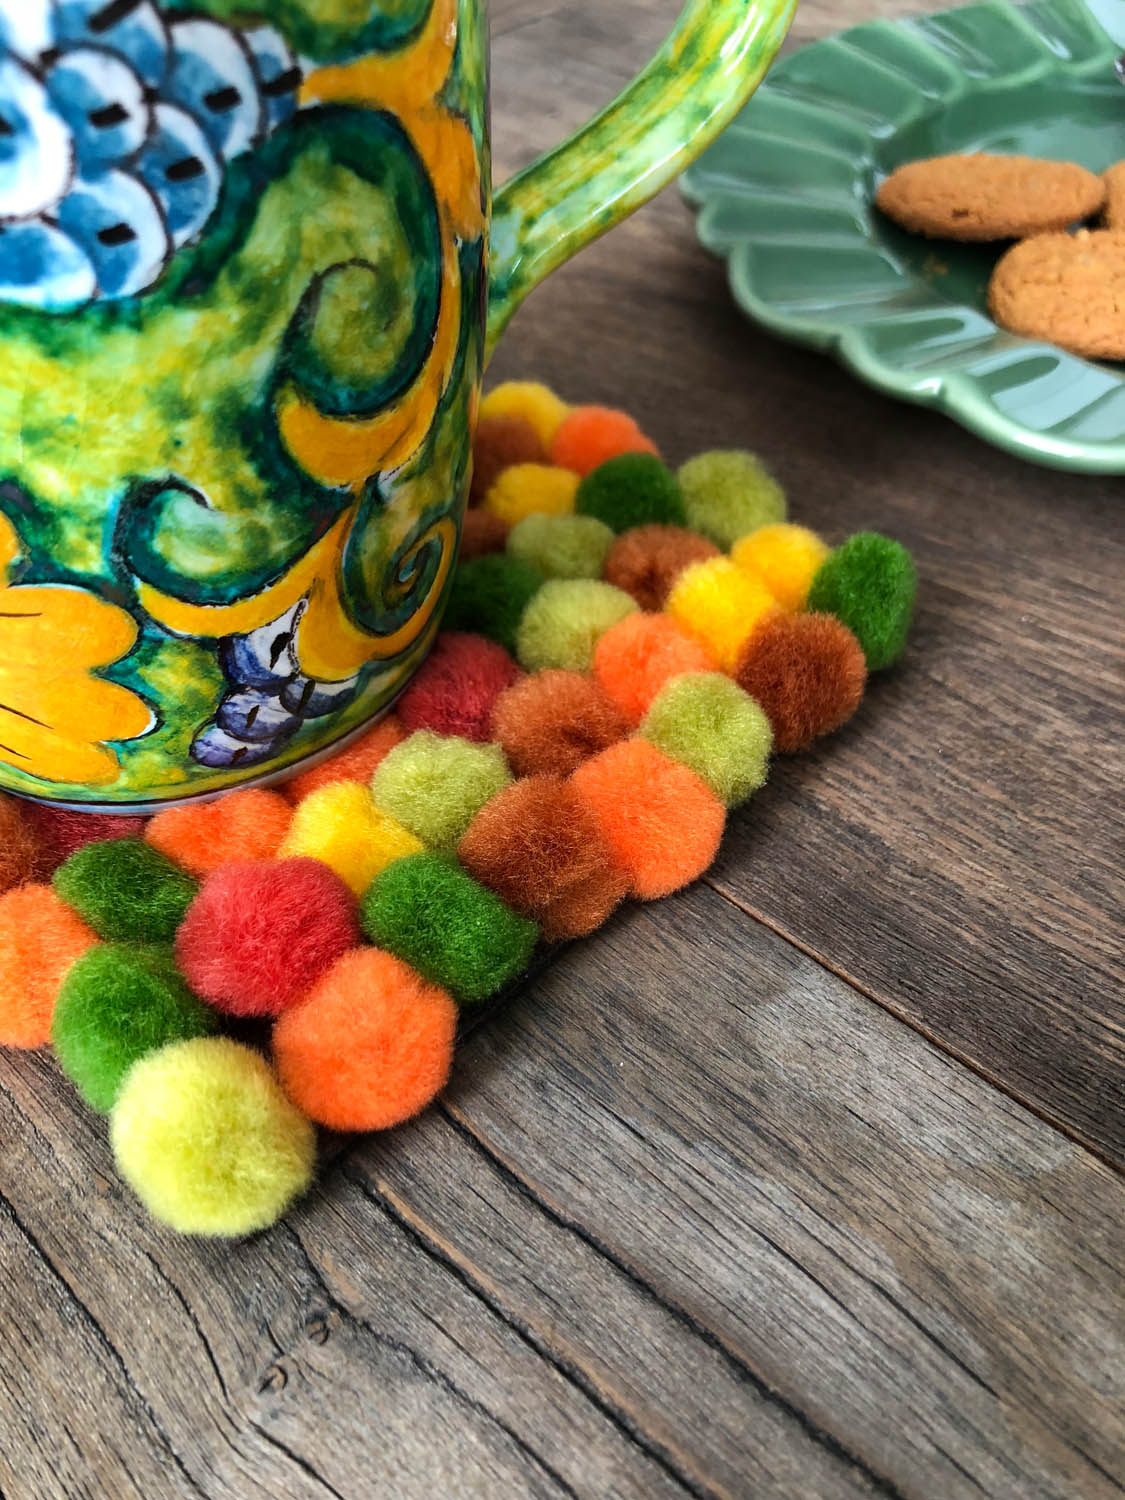 Pom-pom Coasters - Minimal supplies make this project easy and inexpensive, and it's fun for all ages! Use the same technique to make trivets and placemats.